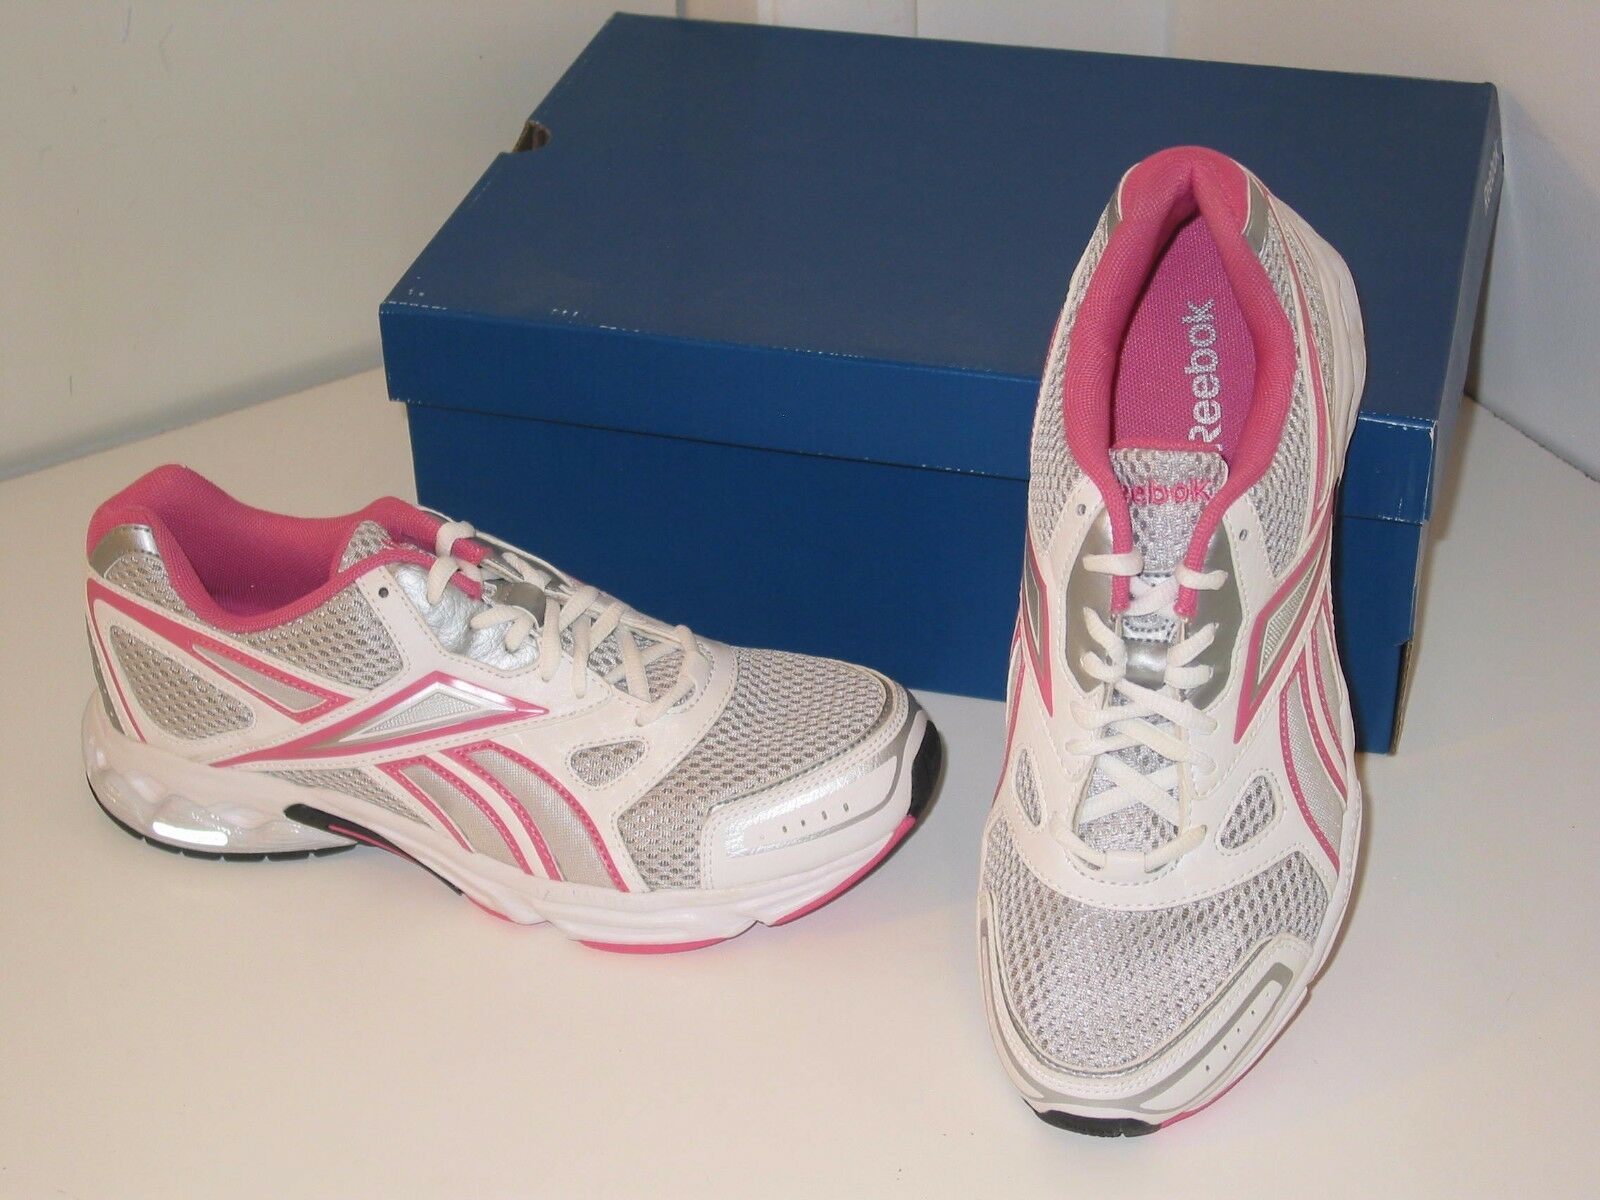 Reebok Instant Running Cross Training Silver Pink Mesh Sneakers Schuhes Damenschuhe 6